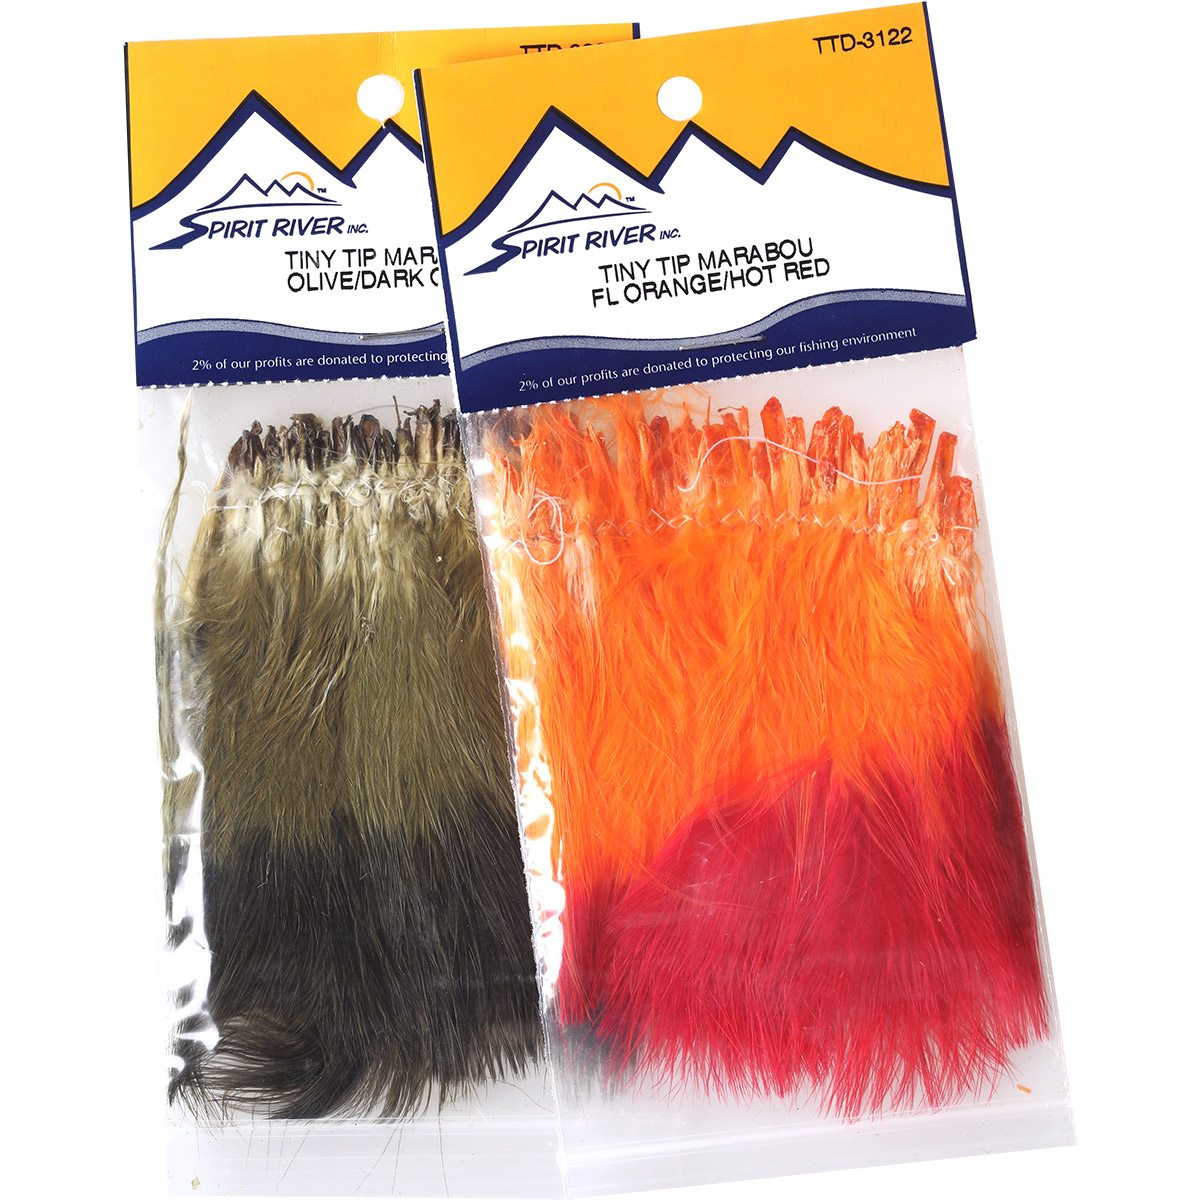 Spirit River Tiny Tip Marabou